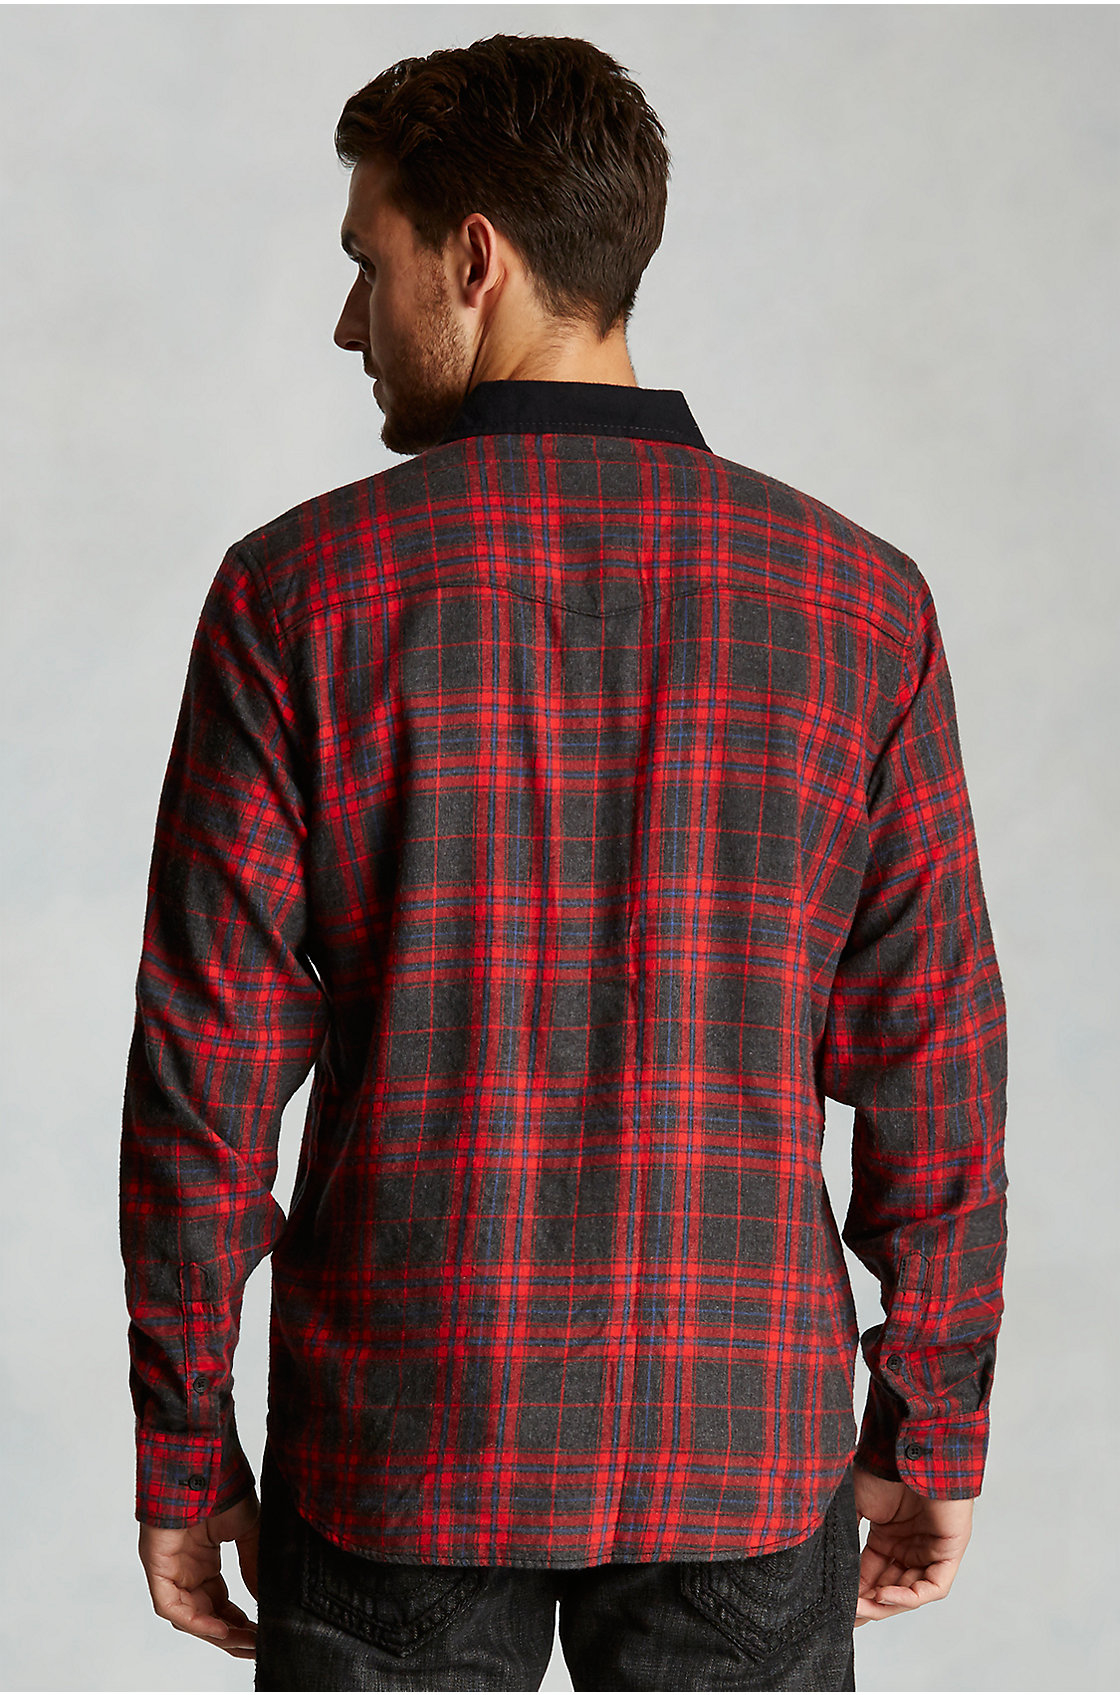 Find great deals on eBay for mens red plaid shirt. Shop with confidence.